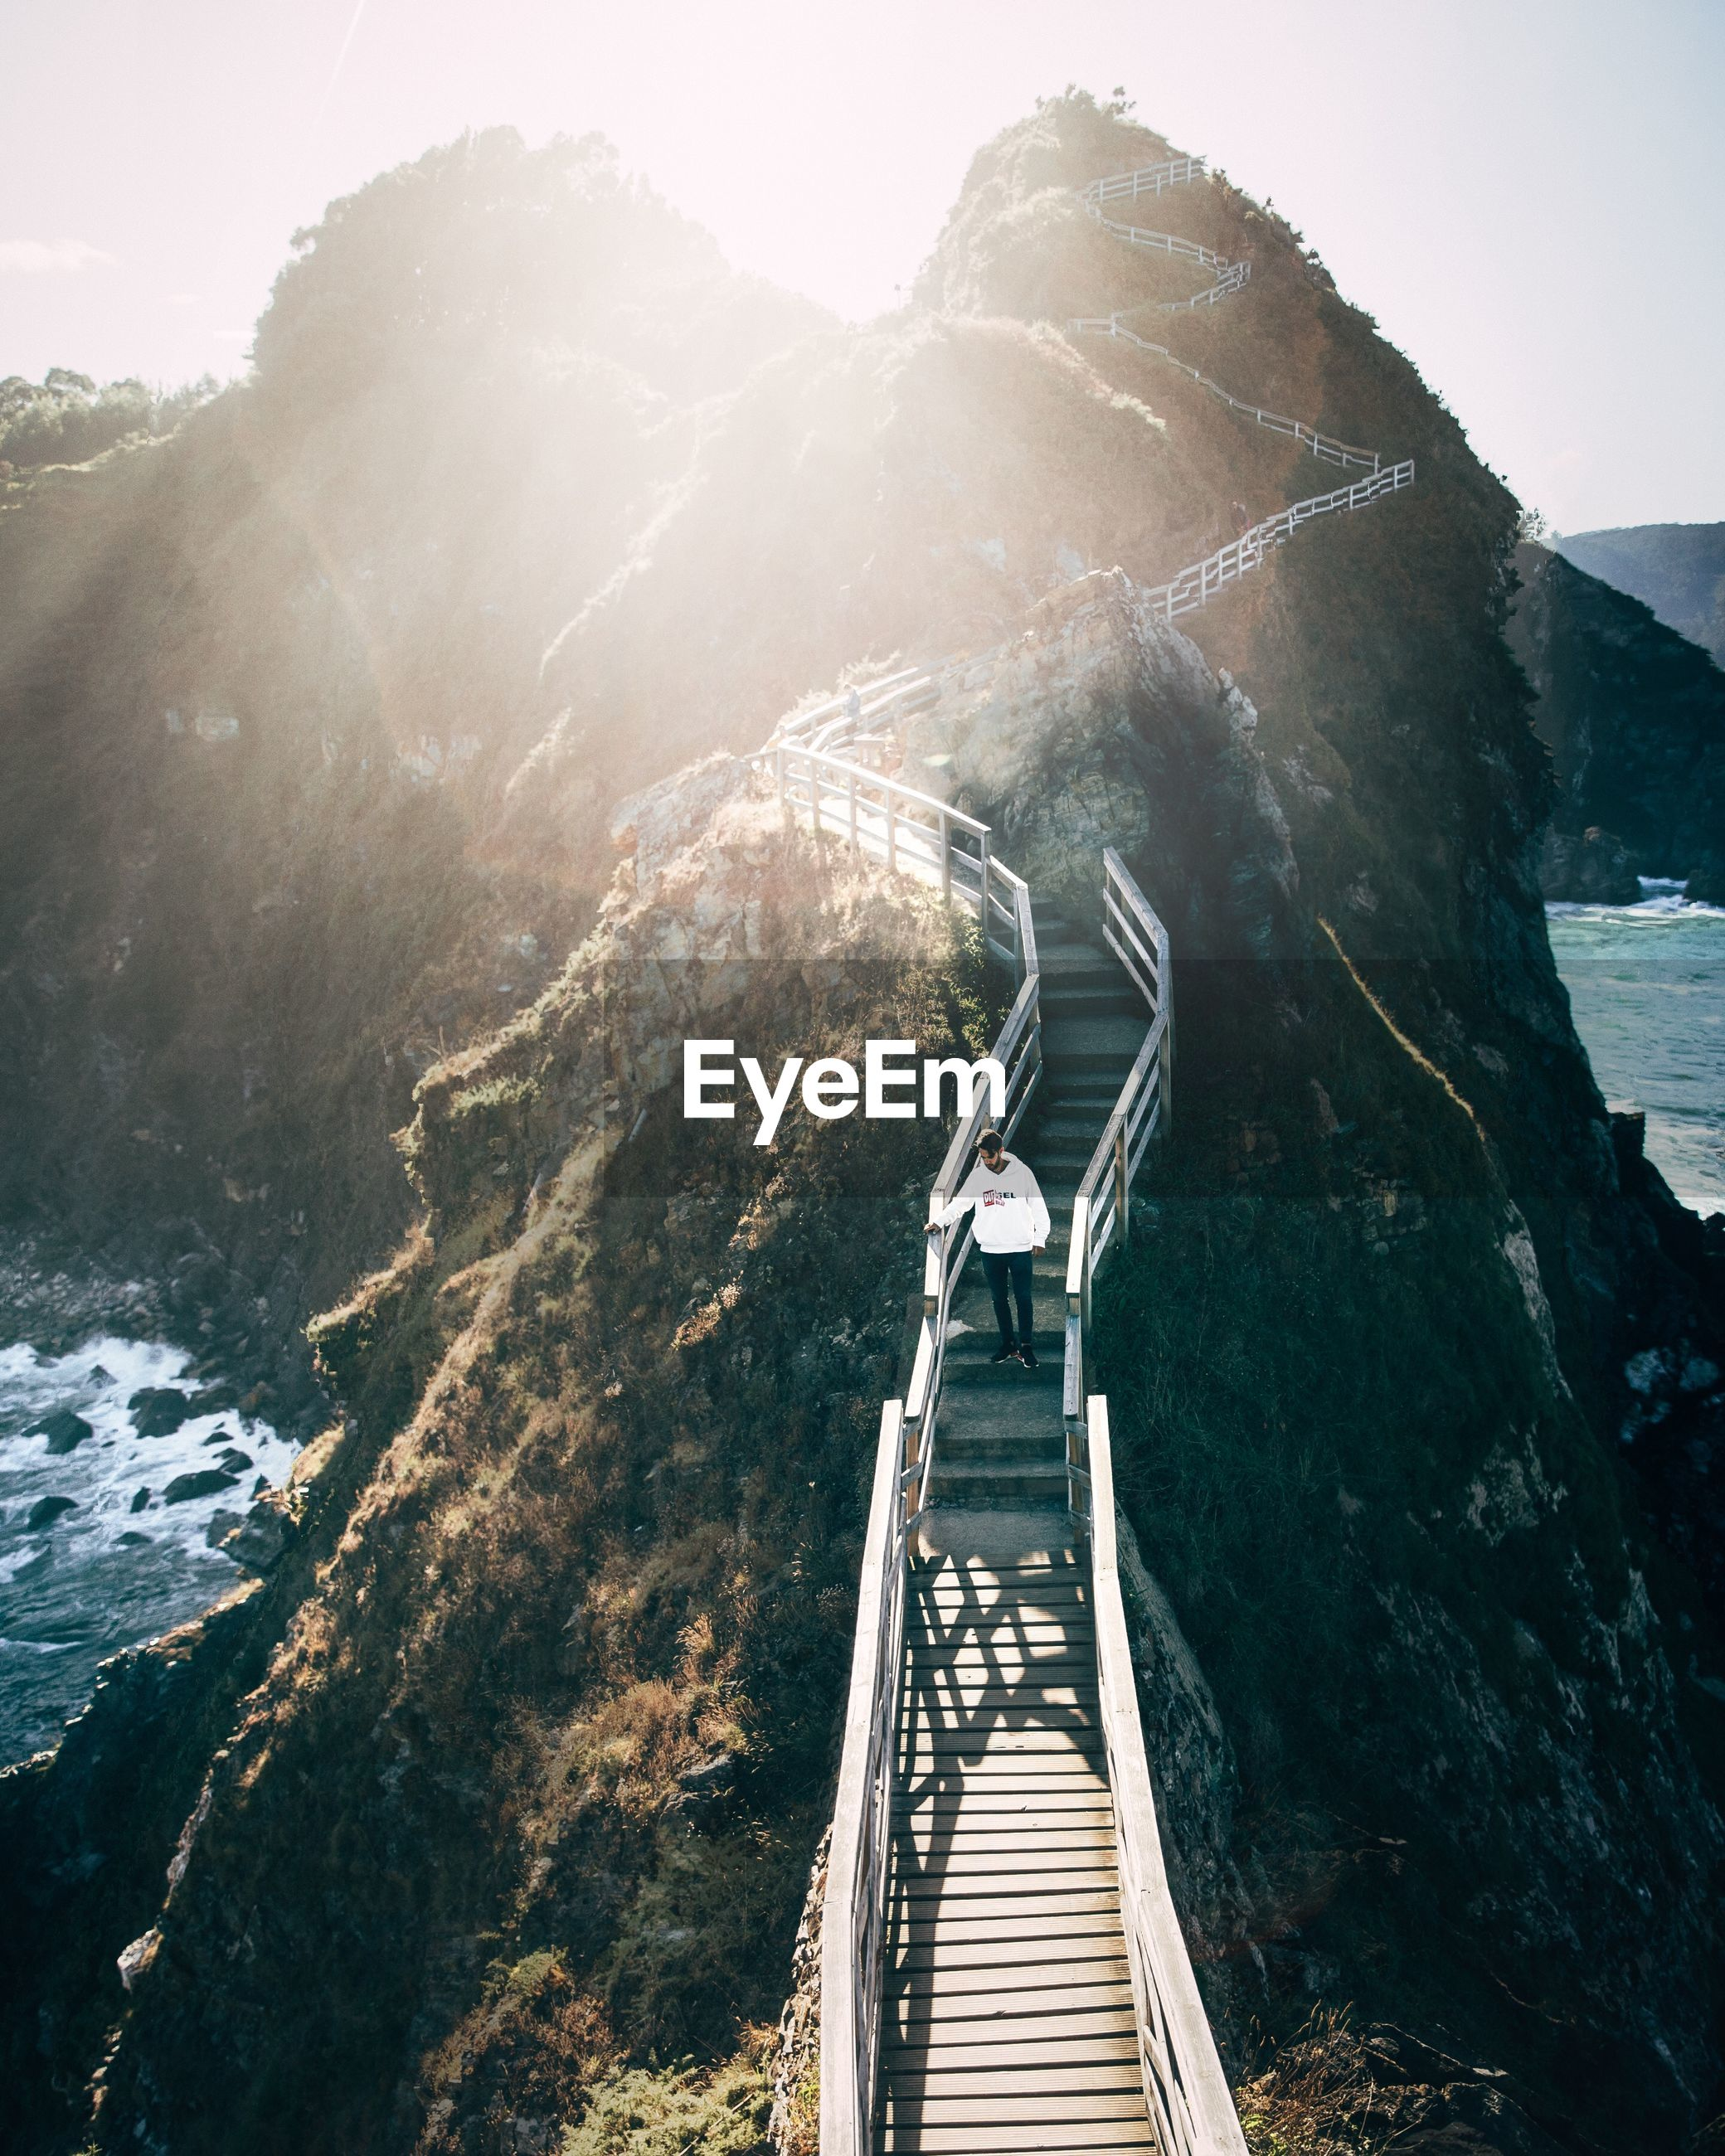 HIGH ANGLE VIEW OF GOLDEN GATE BRIDGE OVER WATER